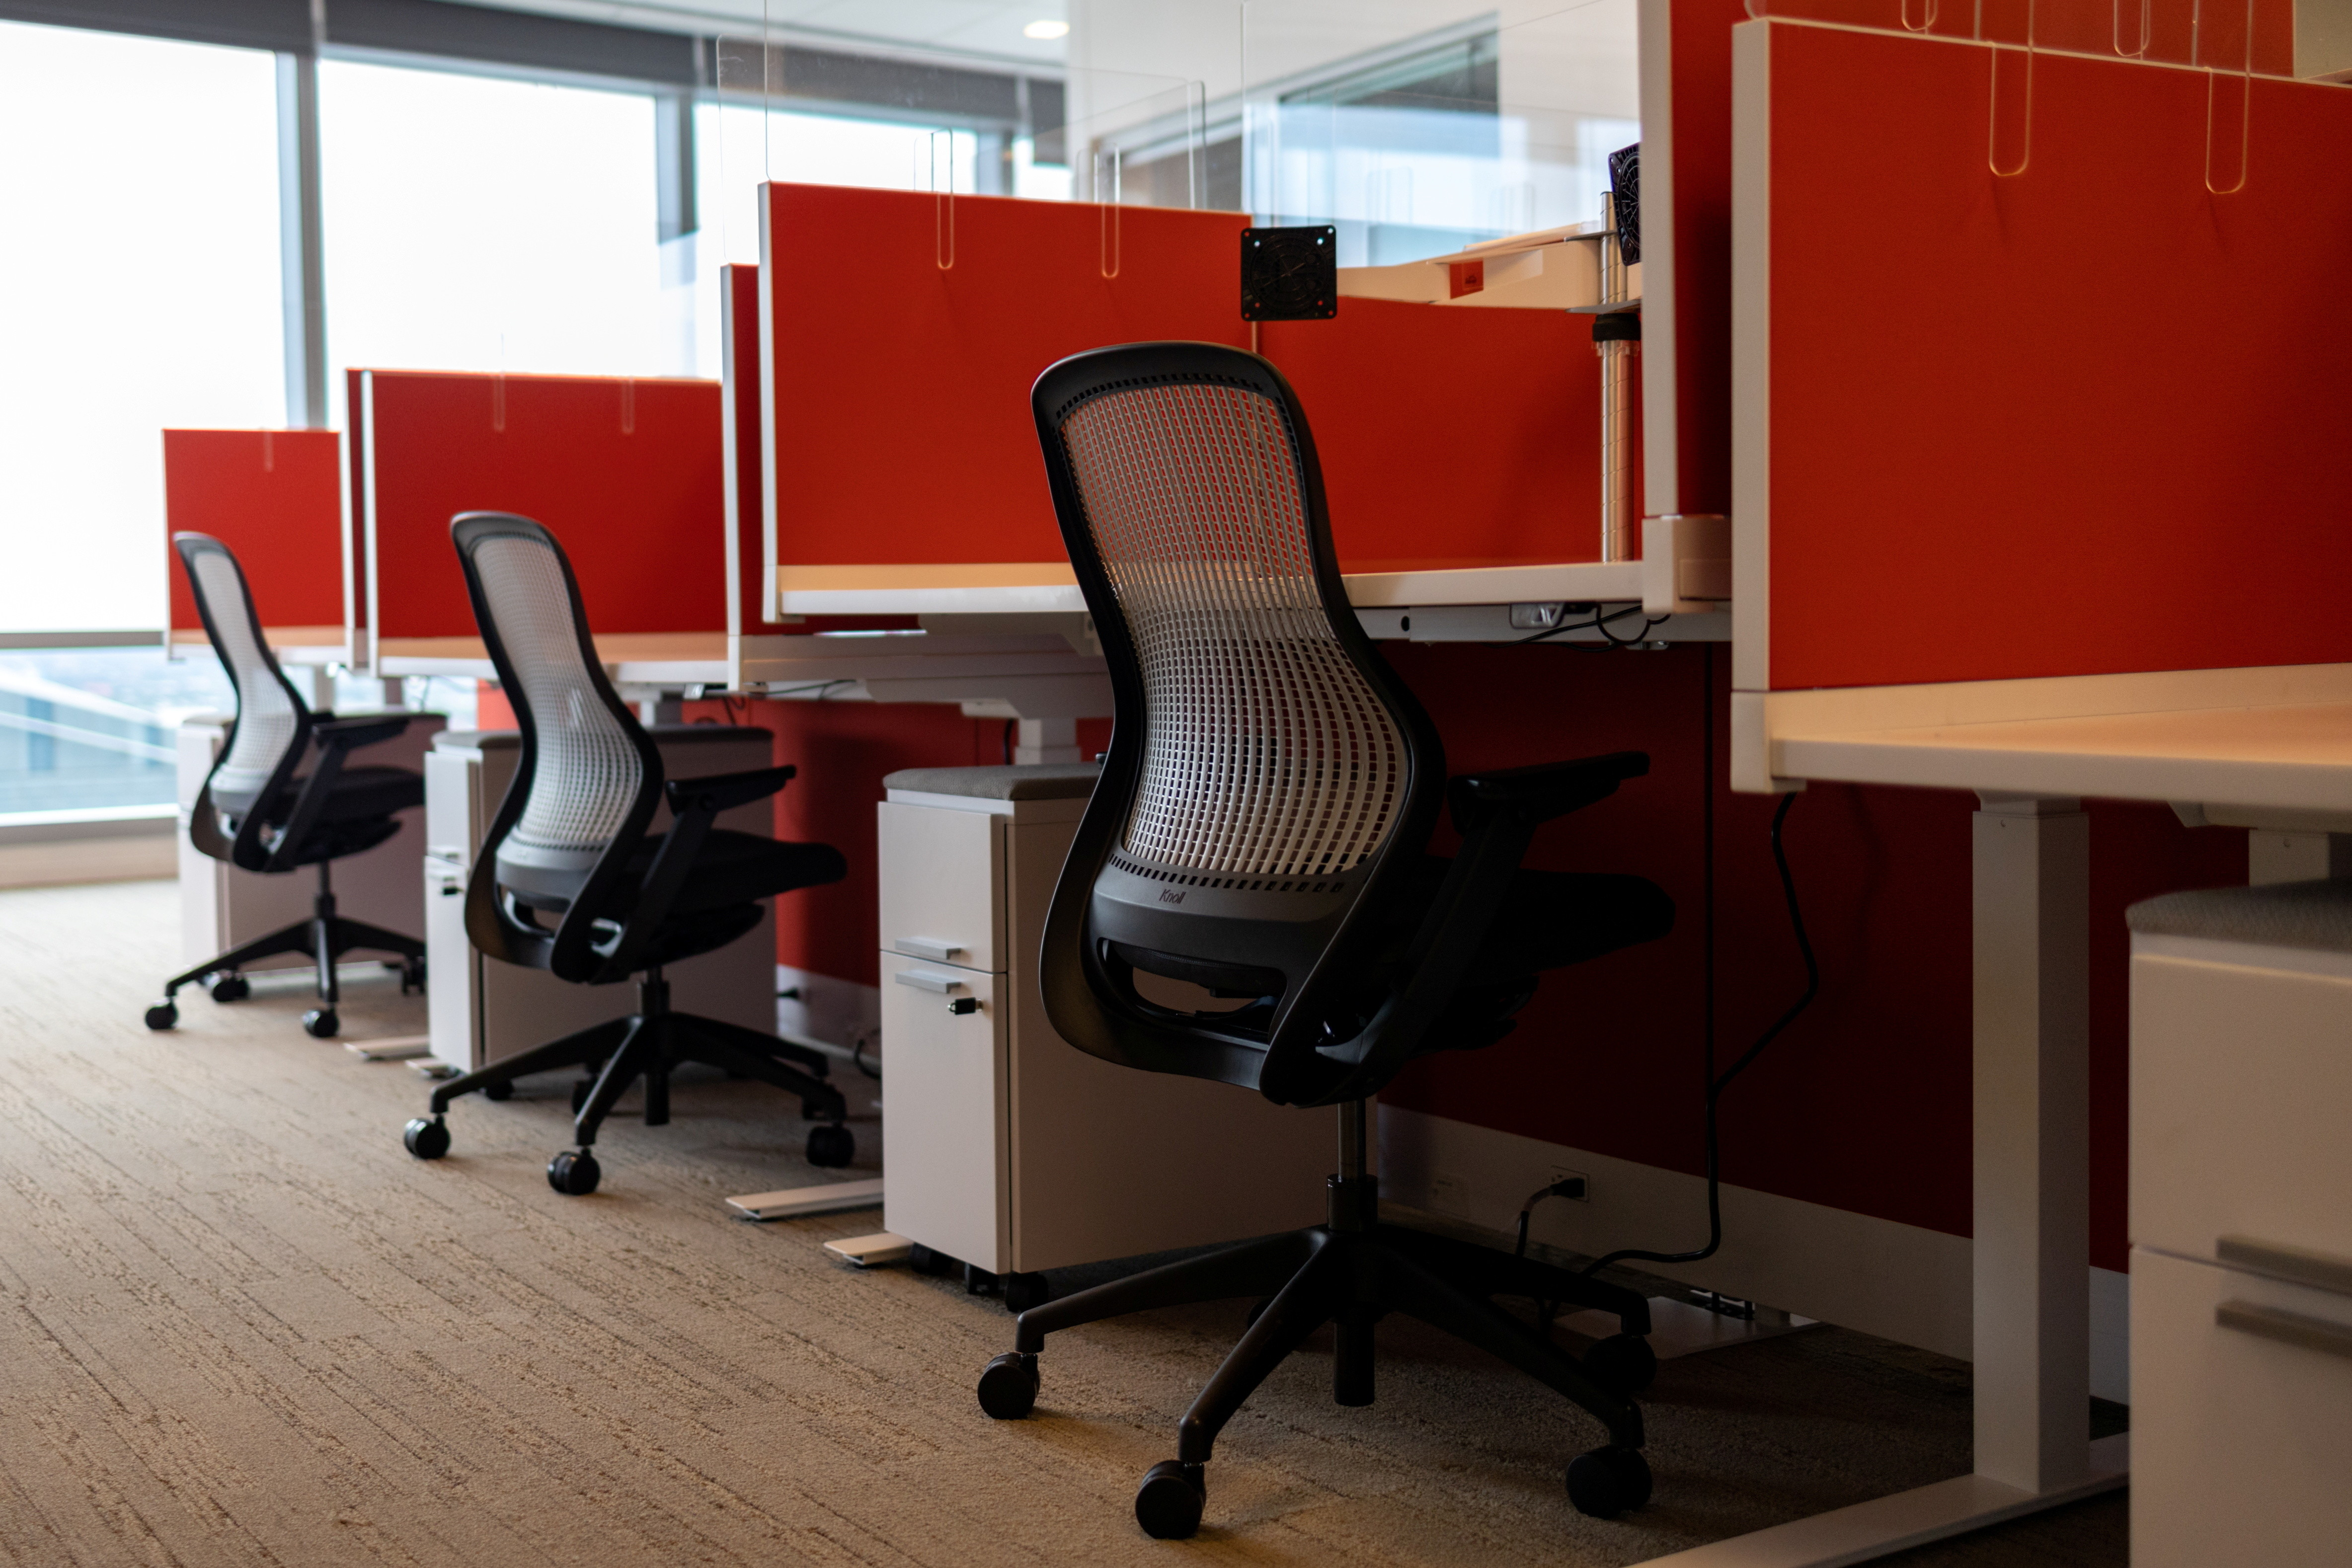 a picture of an empty open plan office